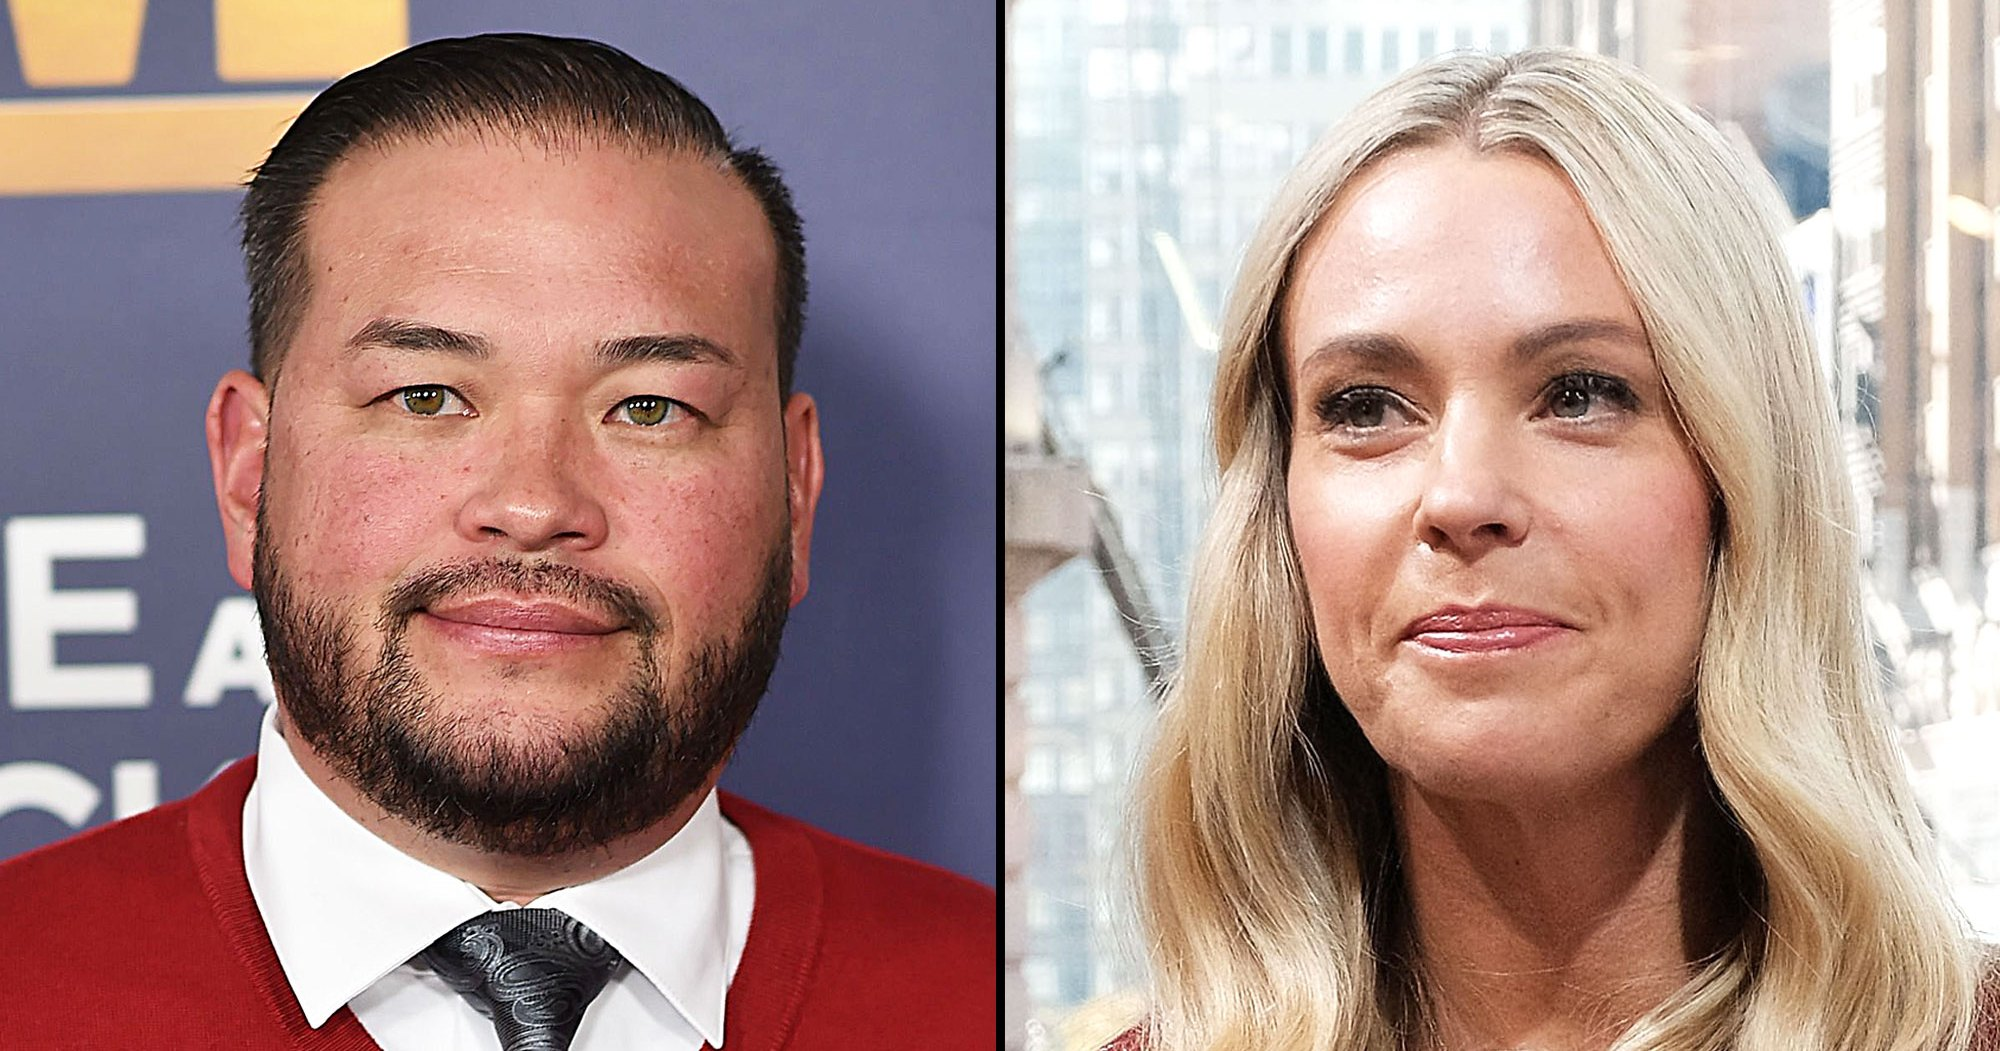 Jon Gosselin Shares Thoughts on Kate Gosselin, Custody Hearing